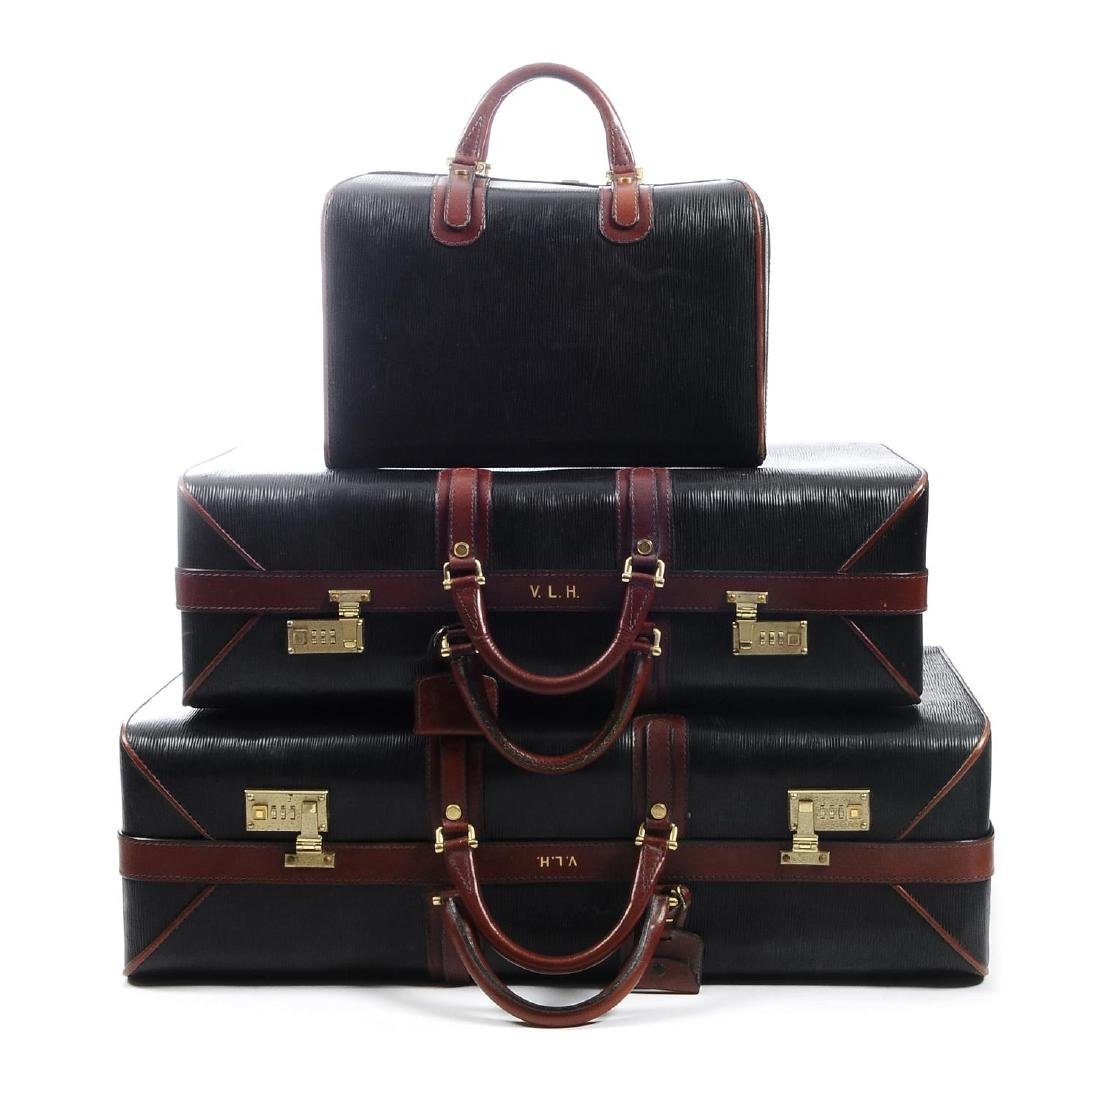 ASPREY - a set of three vintage bespoke travel cases.